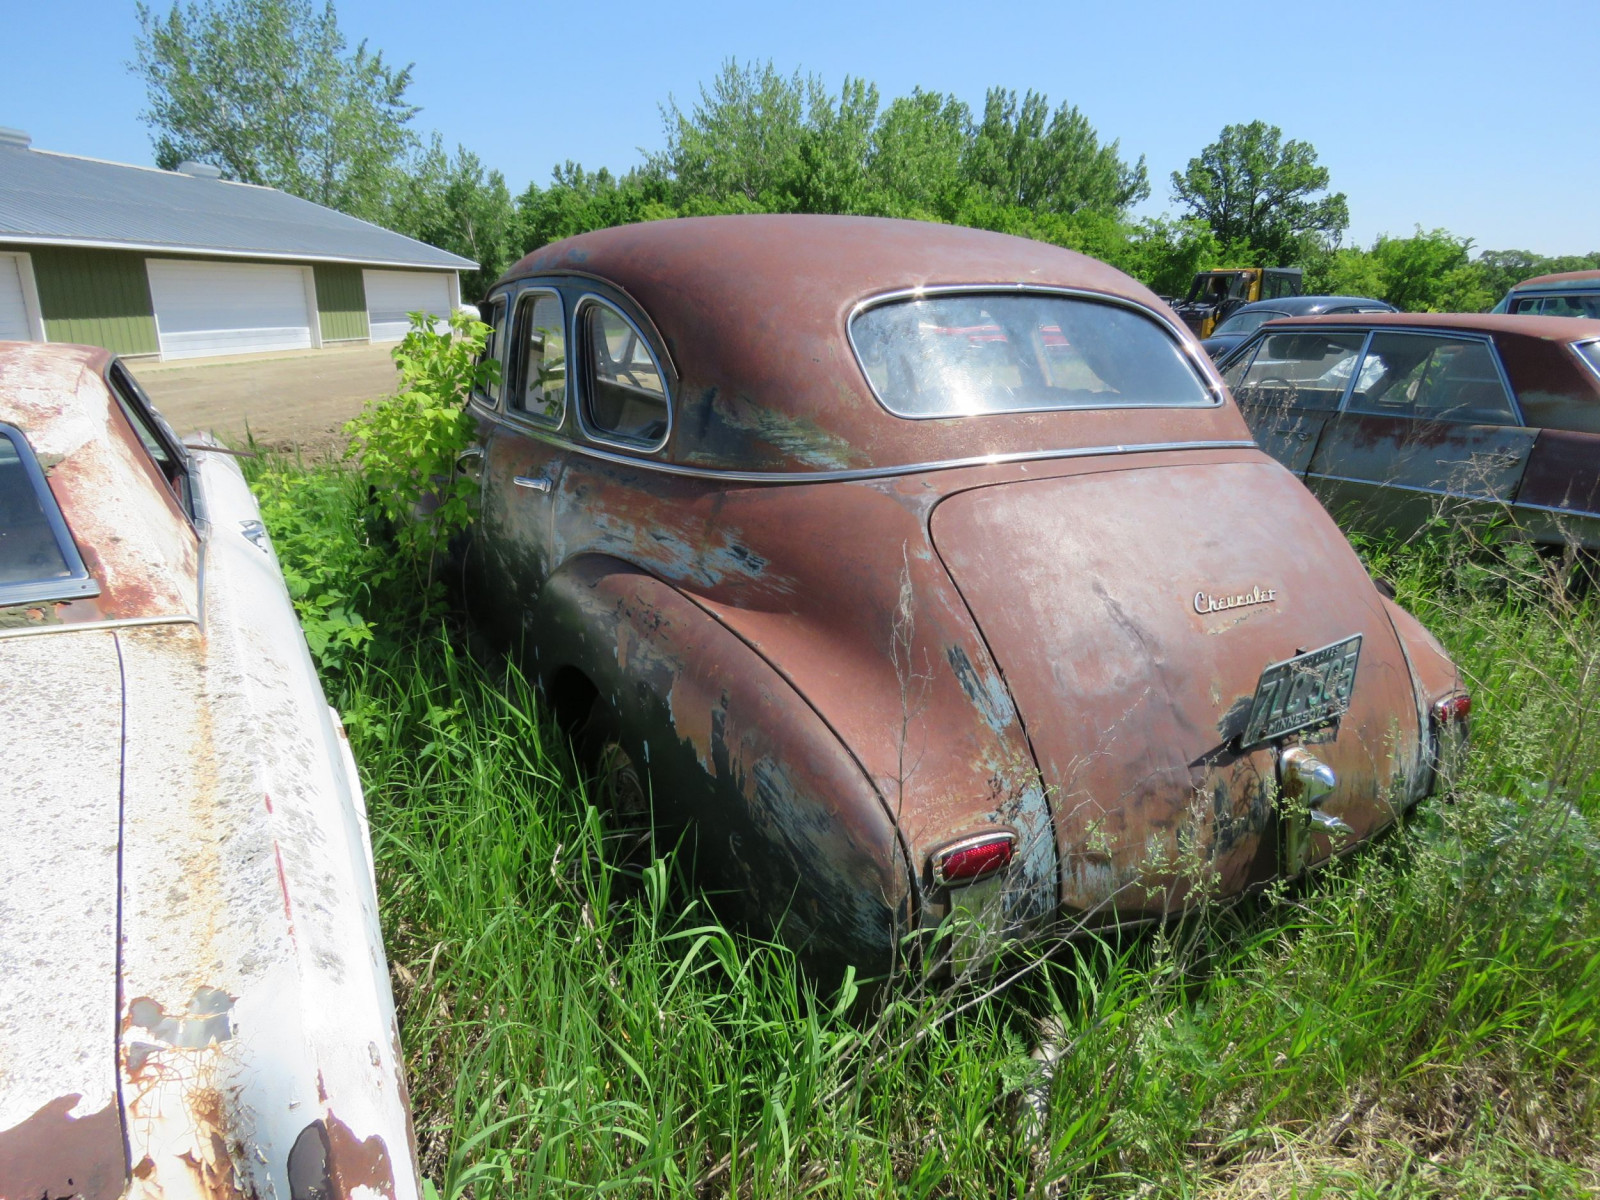 1947 Chevrolet Fleet master 4dr Sedan for Project or parts - Image 6